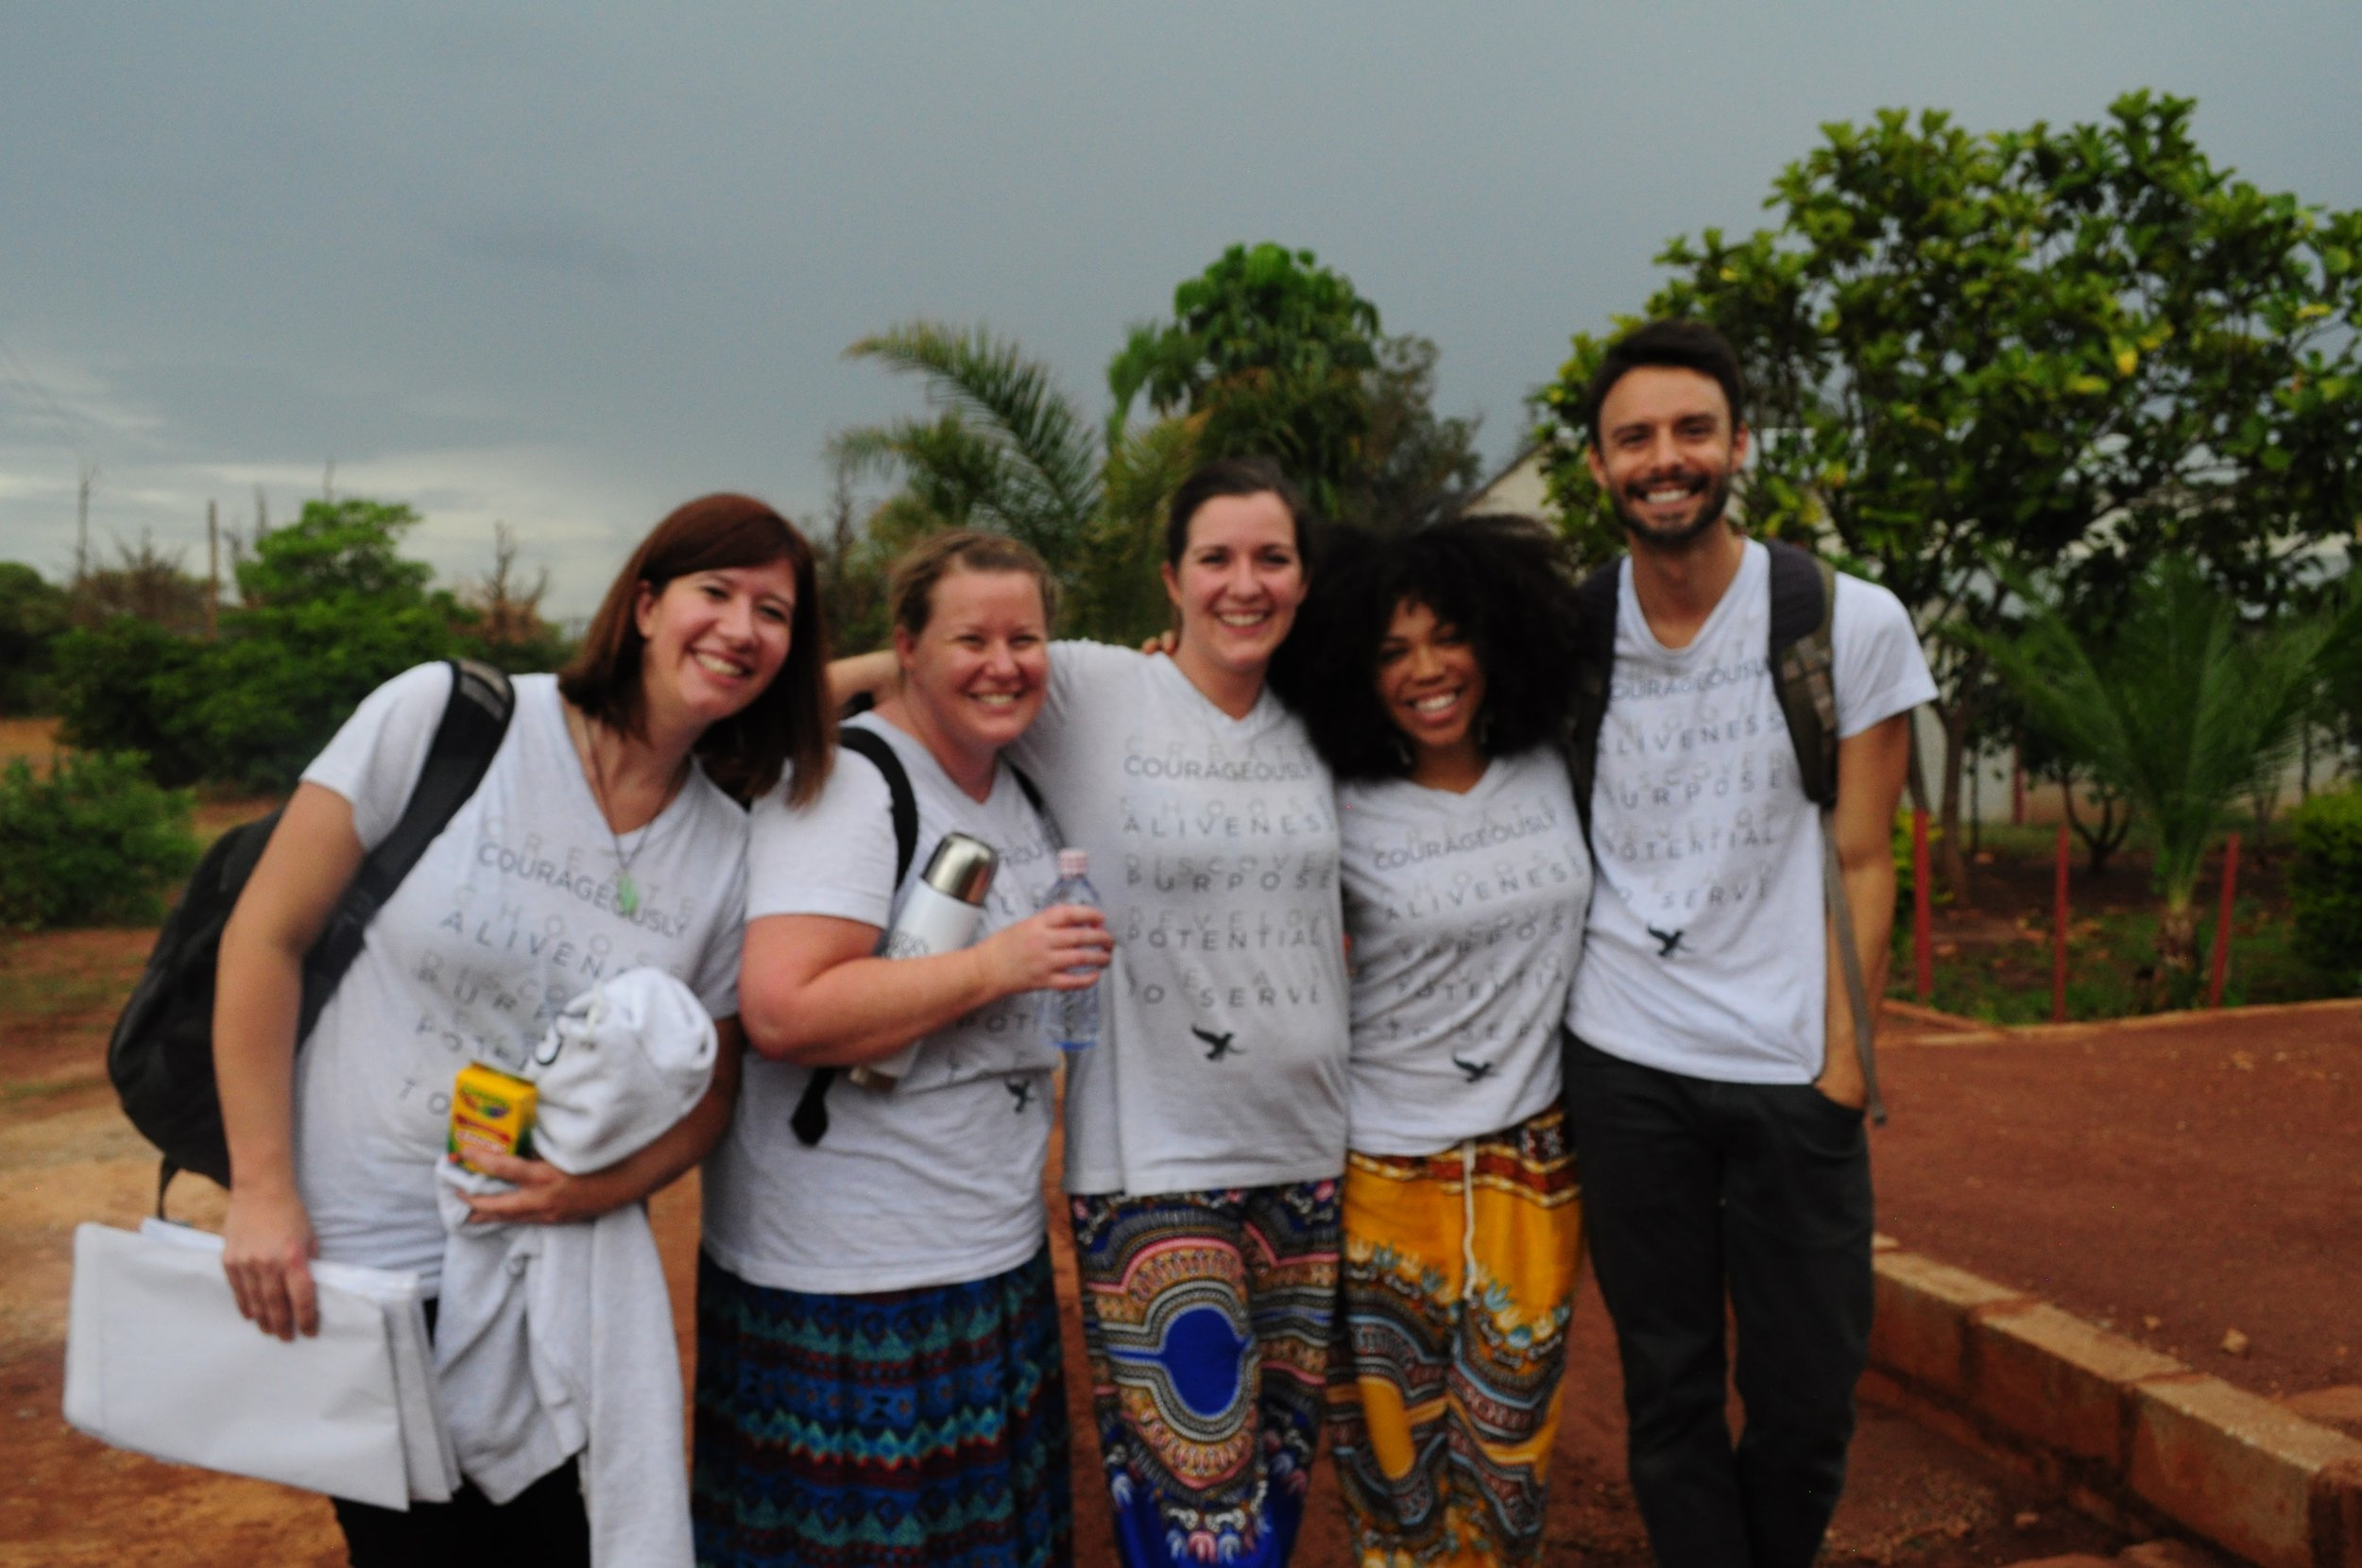 Emily Hathway, Erica Eyer, Megan Gilmore, Bria McCarty and Levi Huffman finishing up a day of training 28 educational coaches in the Chilanga district of Lusaka, Zambia.